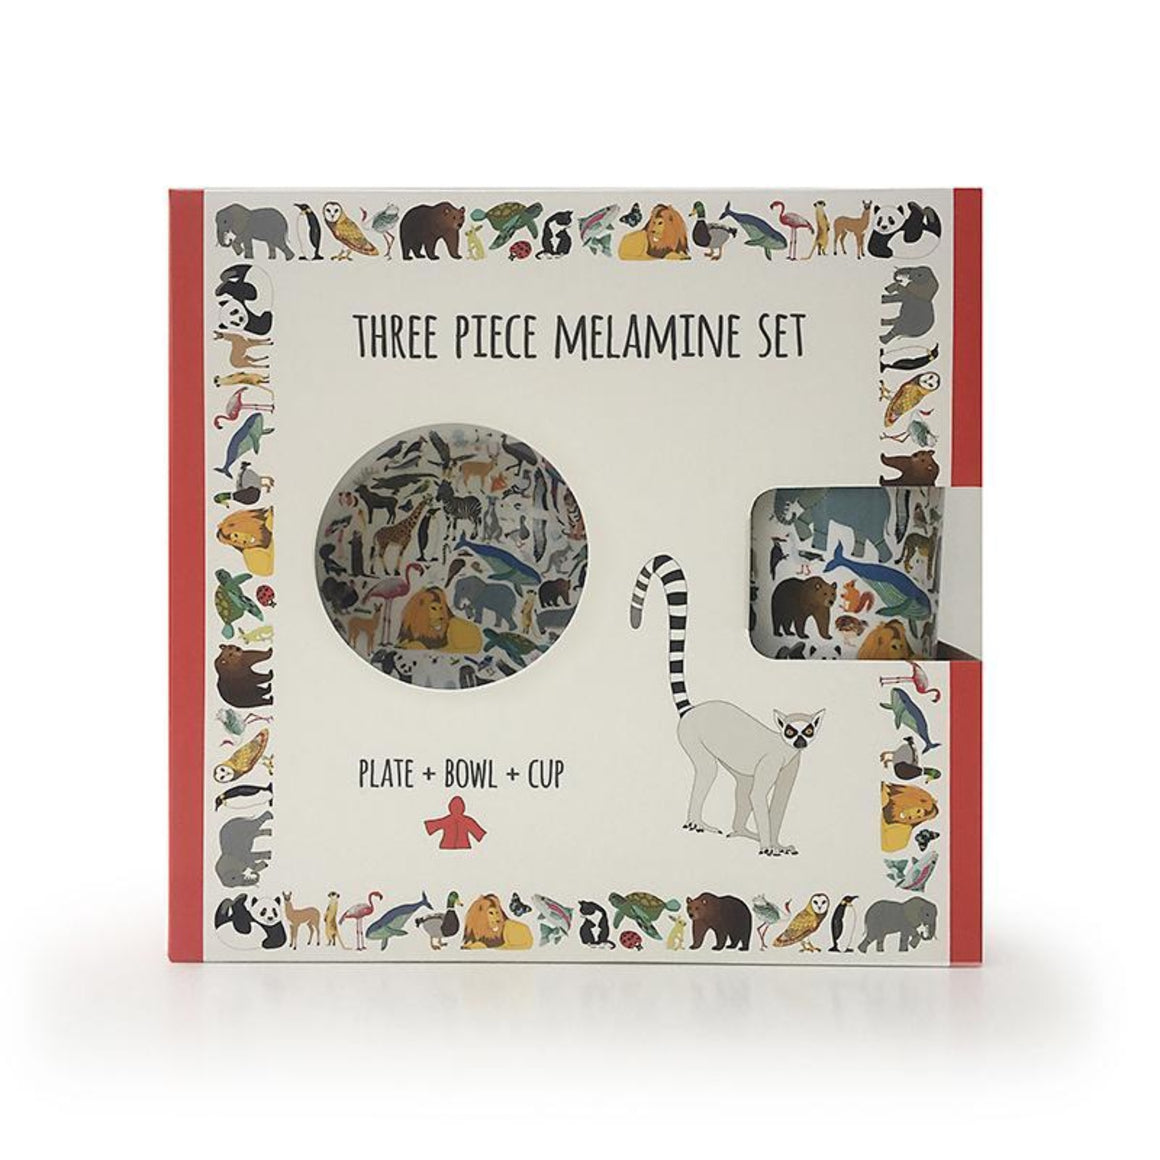 Red Parka Melamine 3 piece set - 101 Collective Nouns